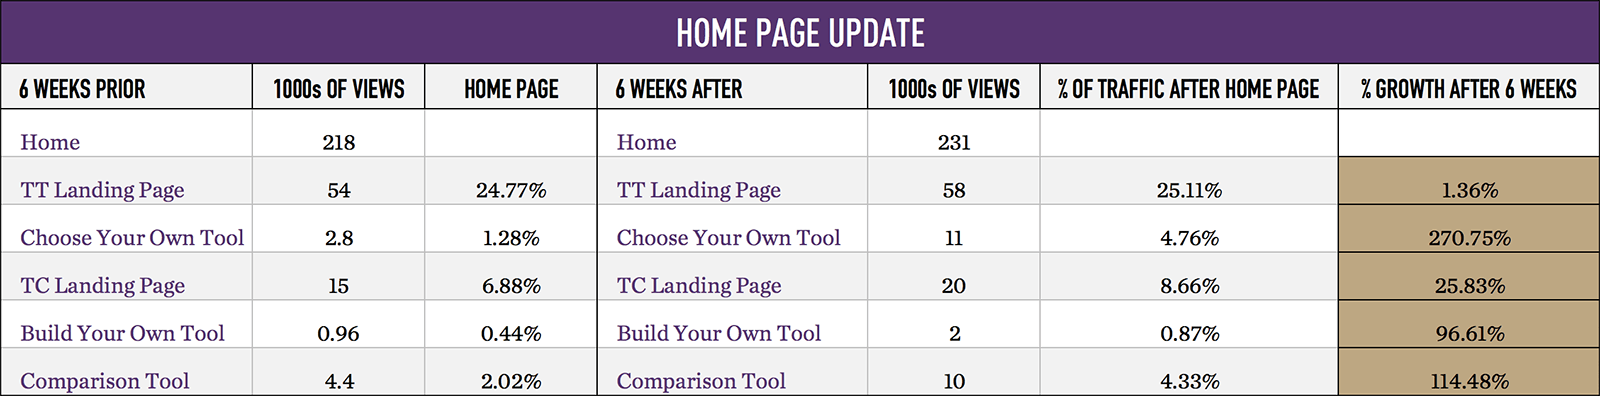 Airstream Homepage Metrics Before and After